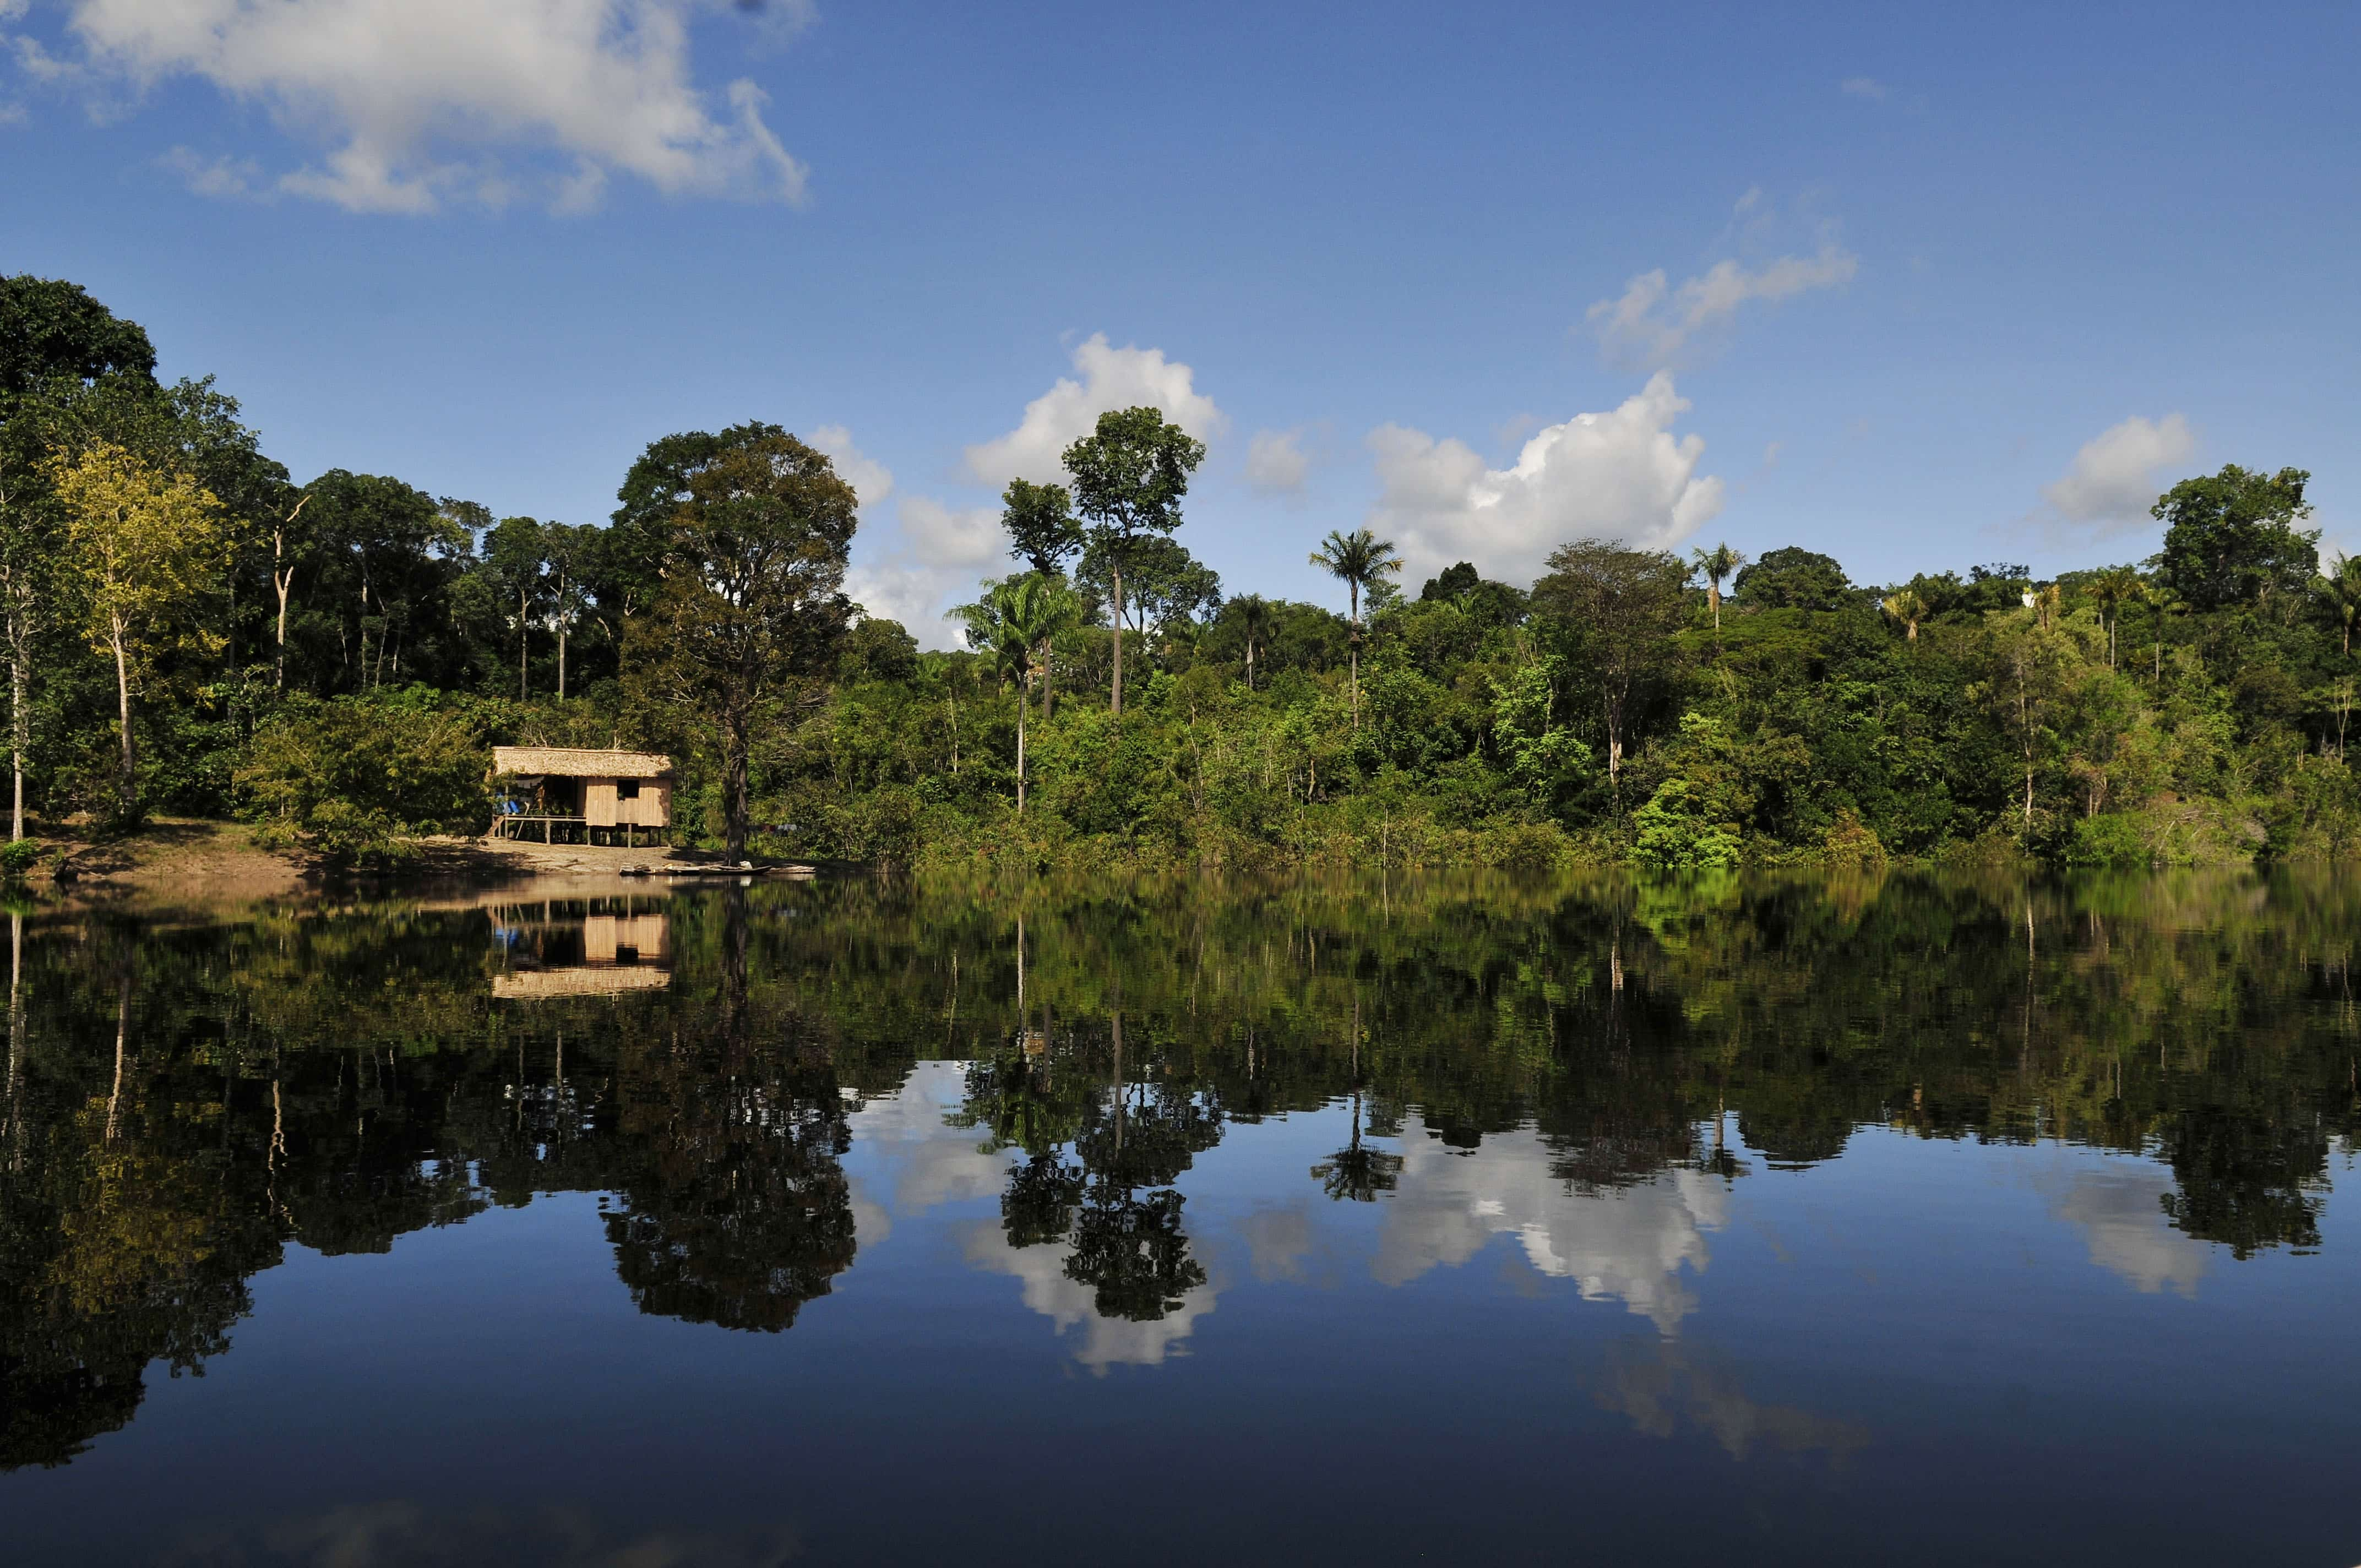 Houses in the Amazon, Brazil, by Neil Palmer of CIAT